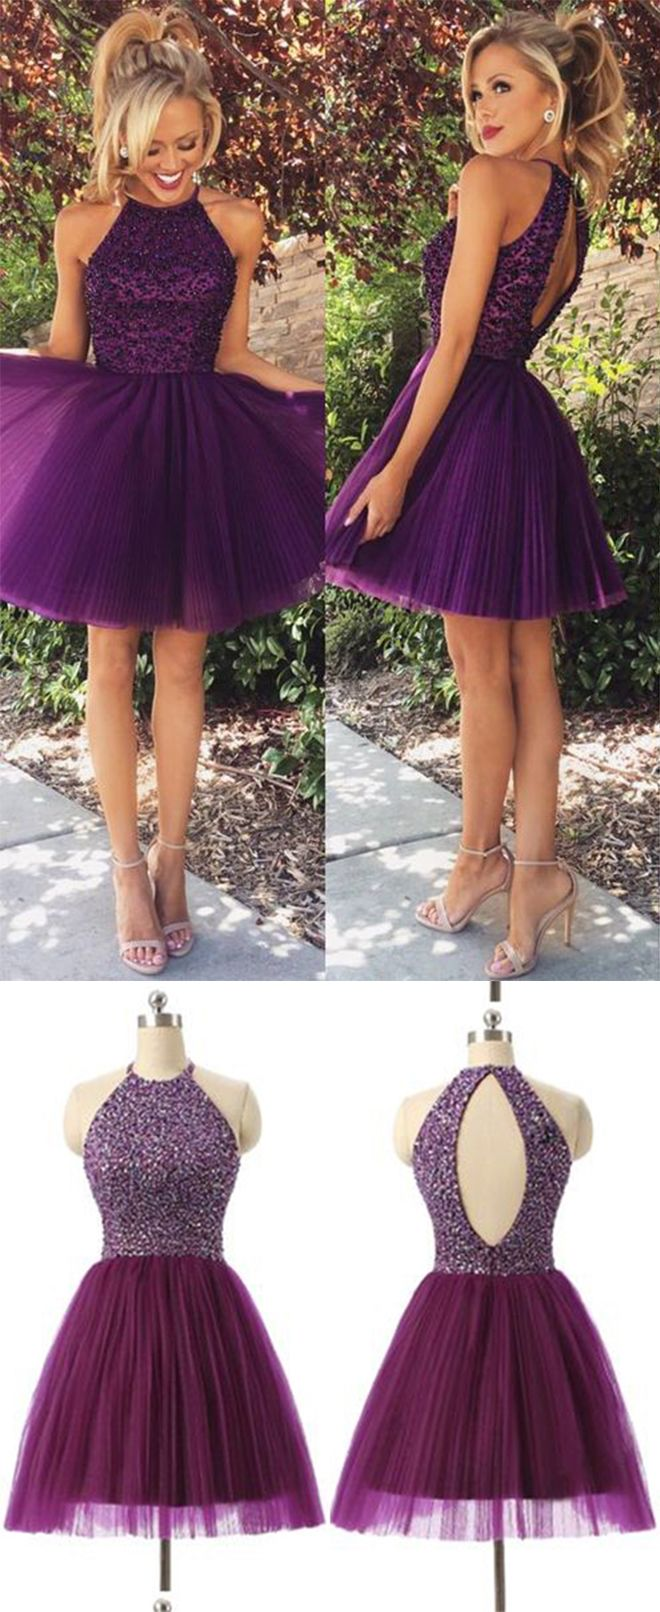 Short prom dresses with lace up back shirt